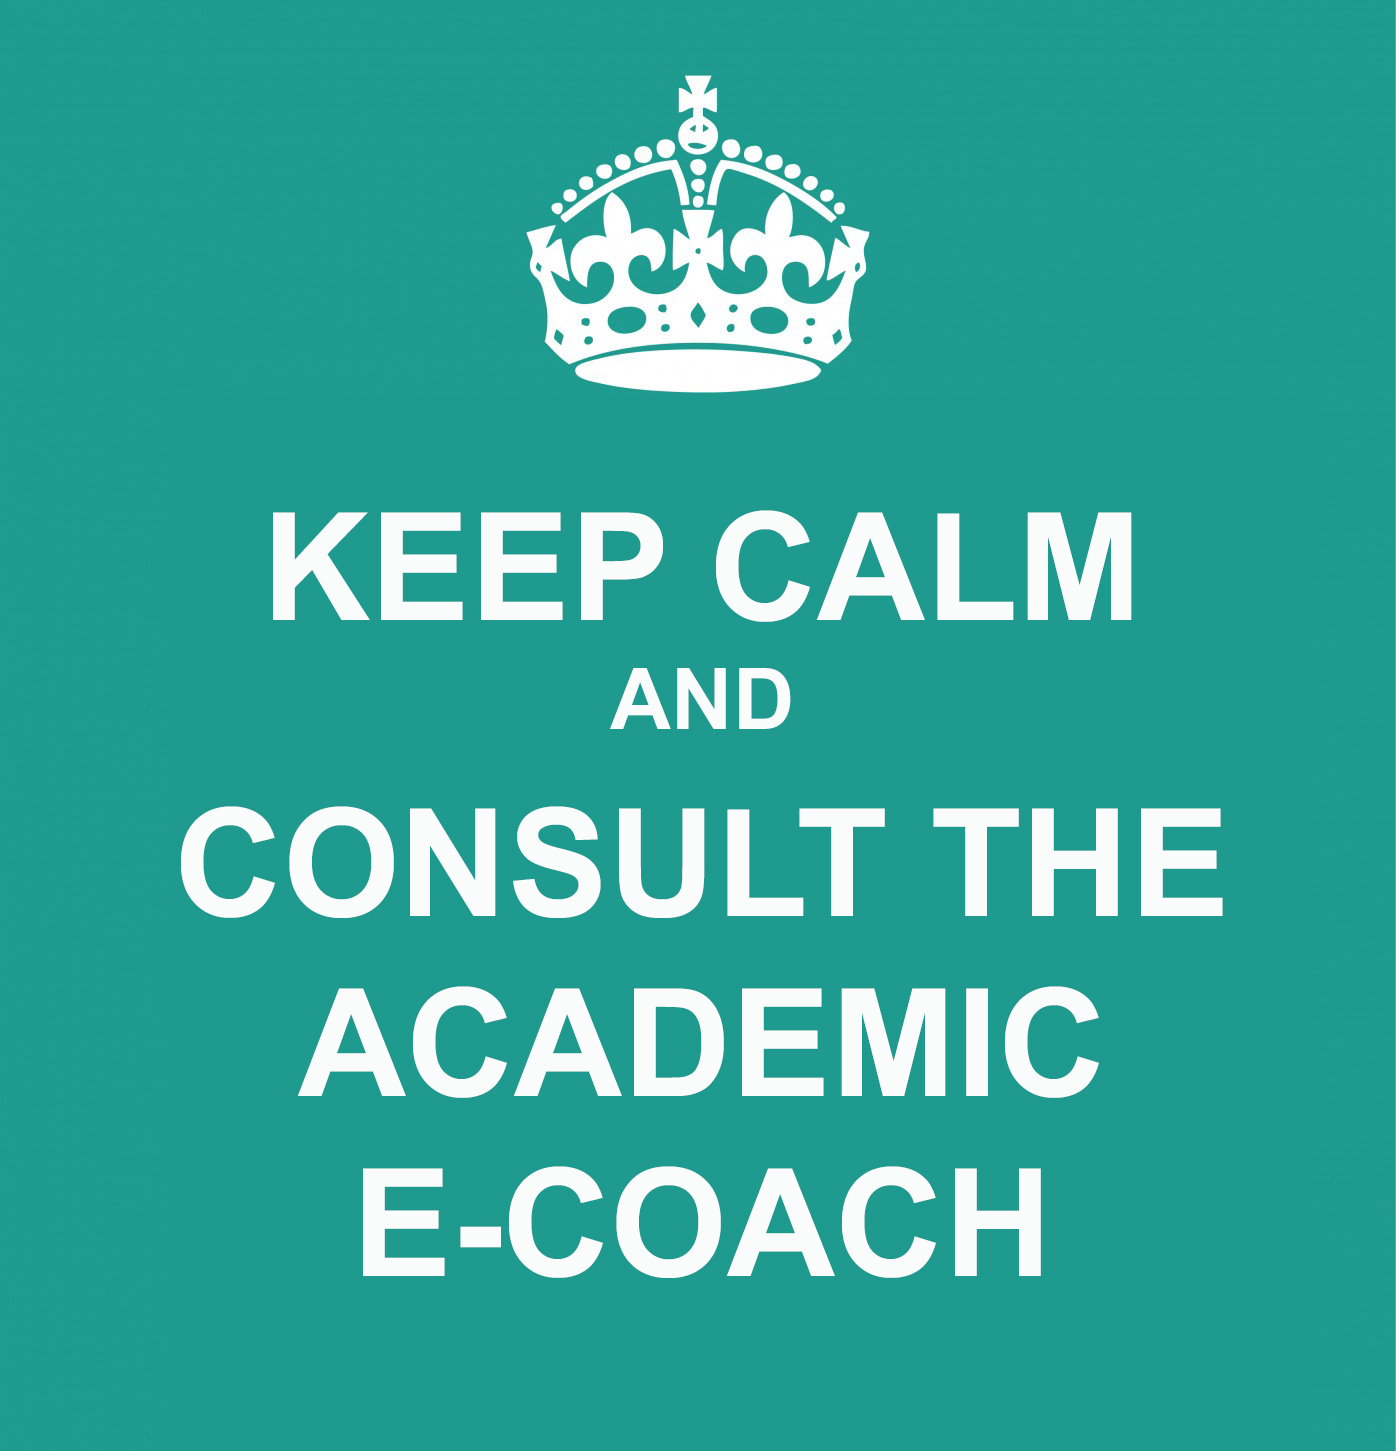 Keep clam and consult the academic e-coach